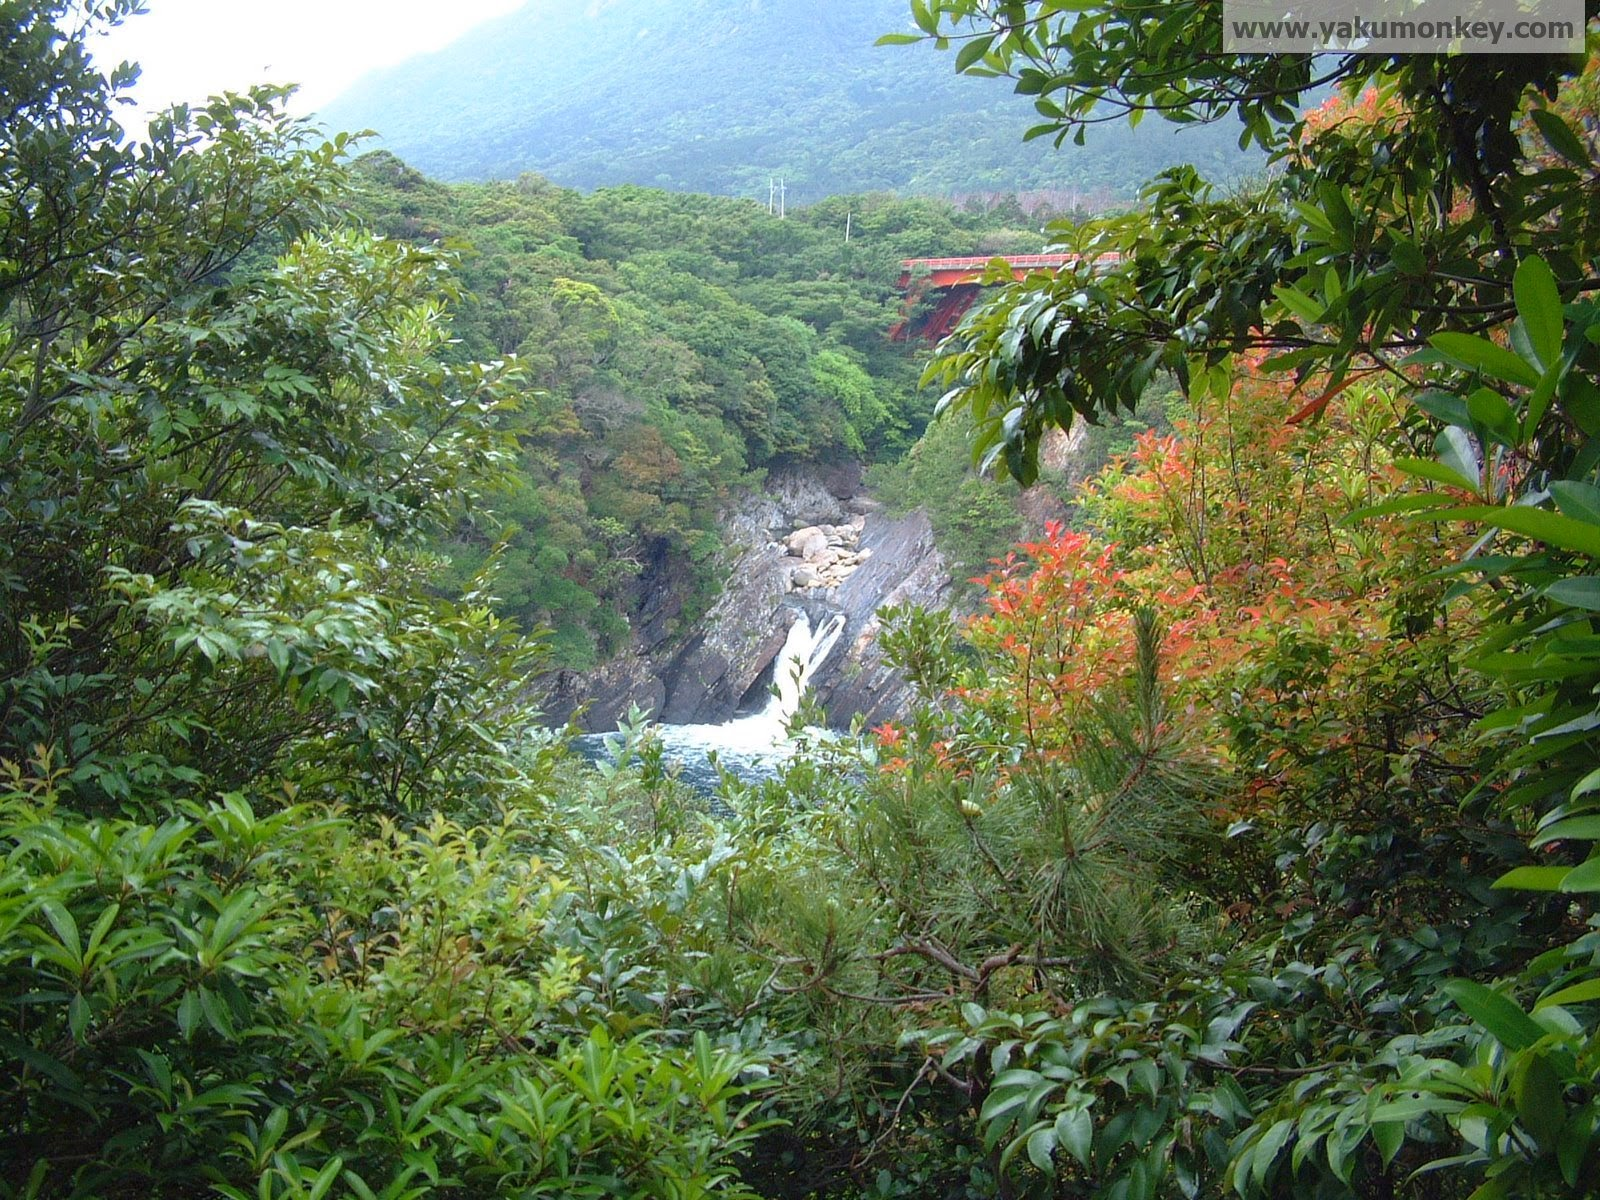 Toroki-no-taki Waterfall